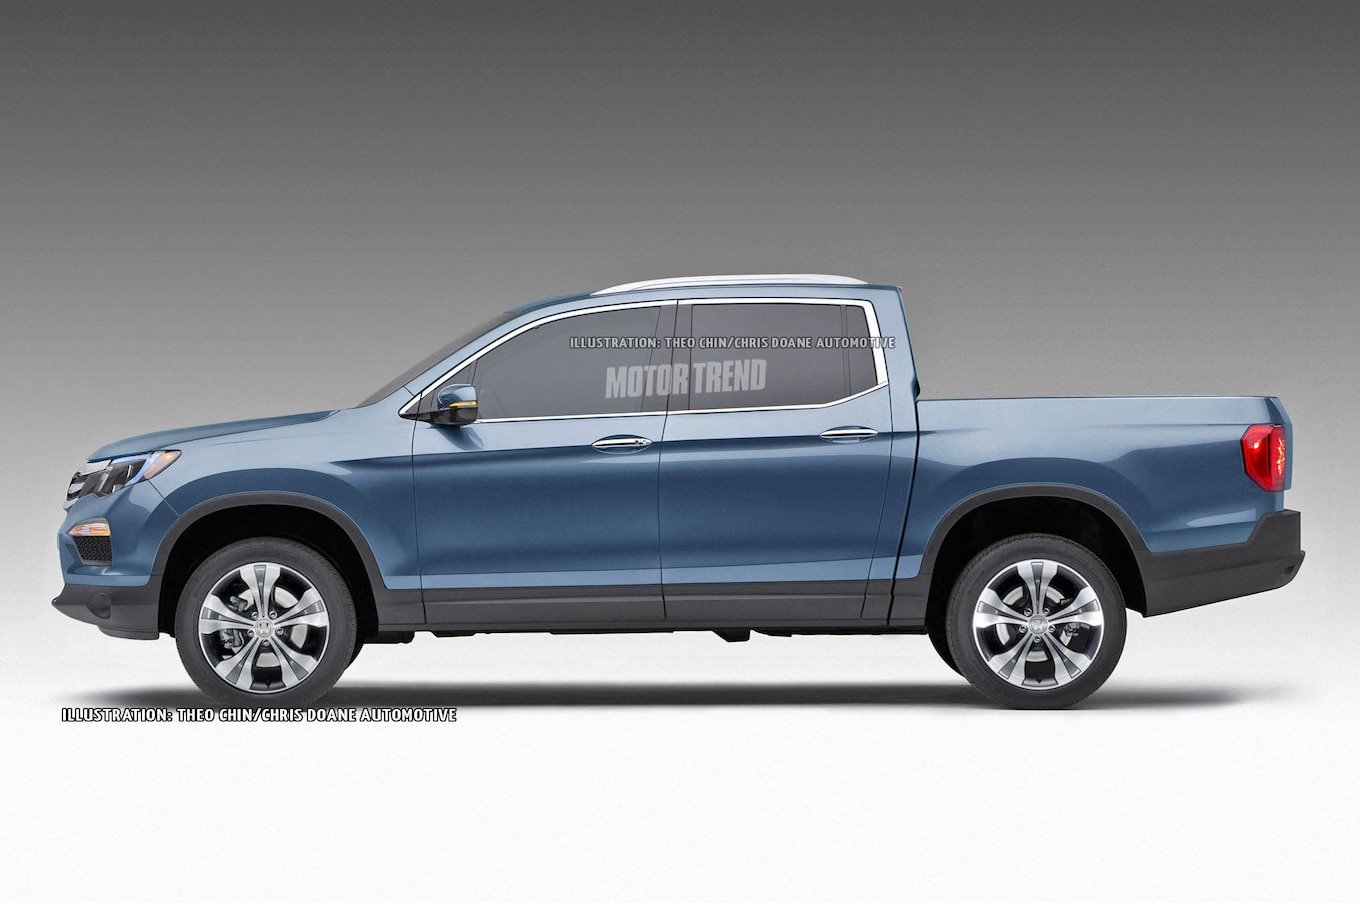 hight resolution of should the new honda ridgeline look like this also 2017 honda ridgeline blue on single motor circuit diagram